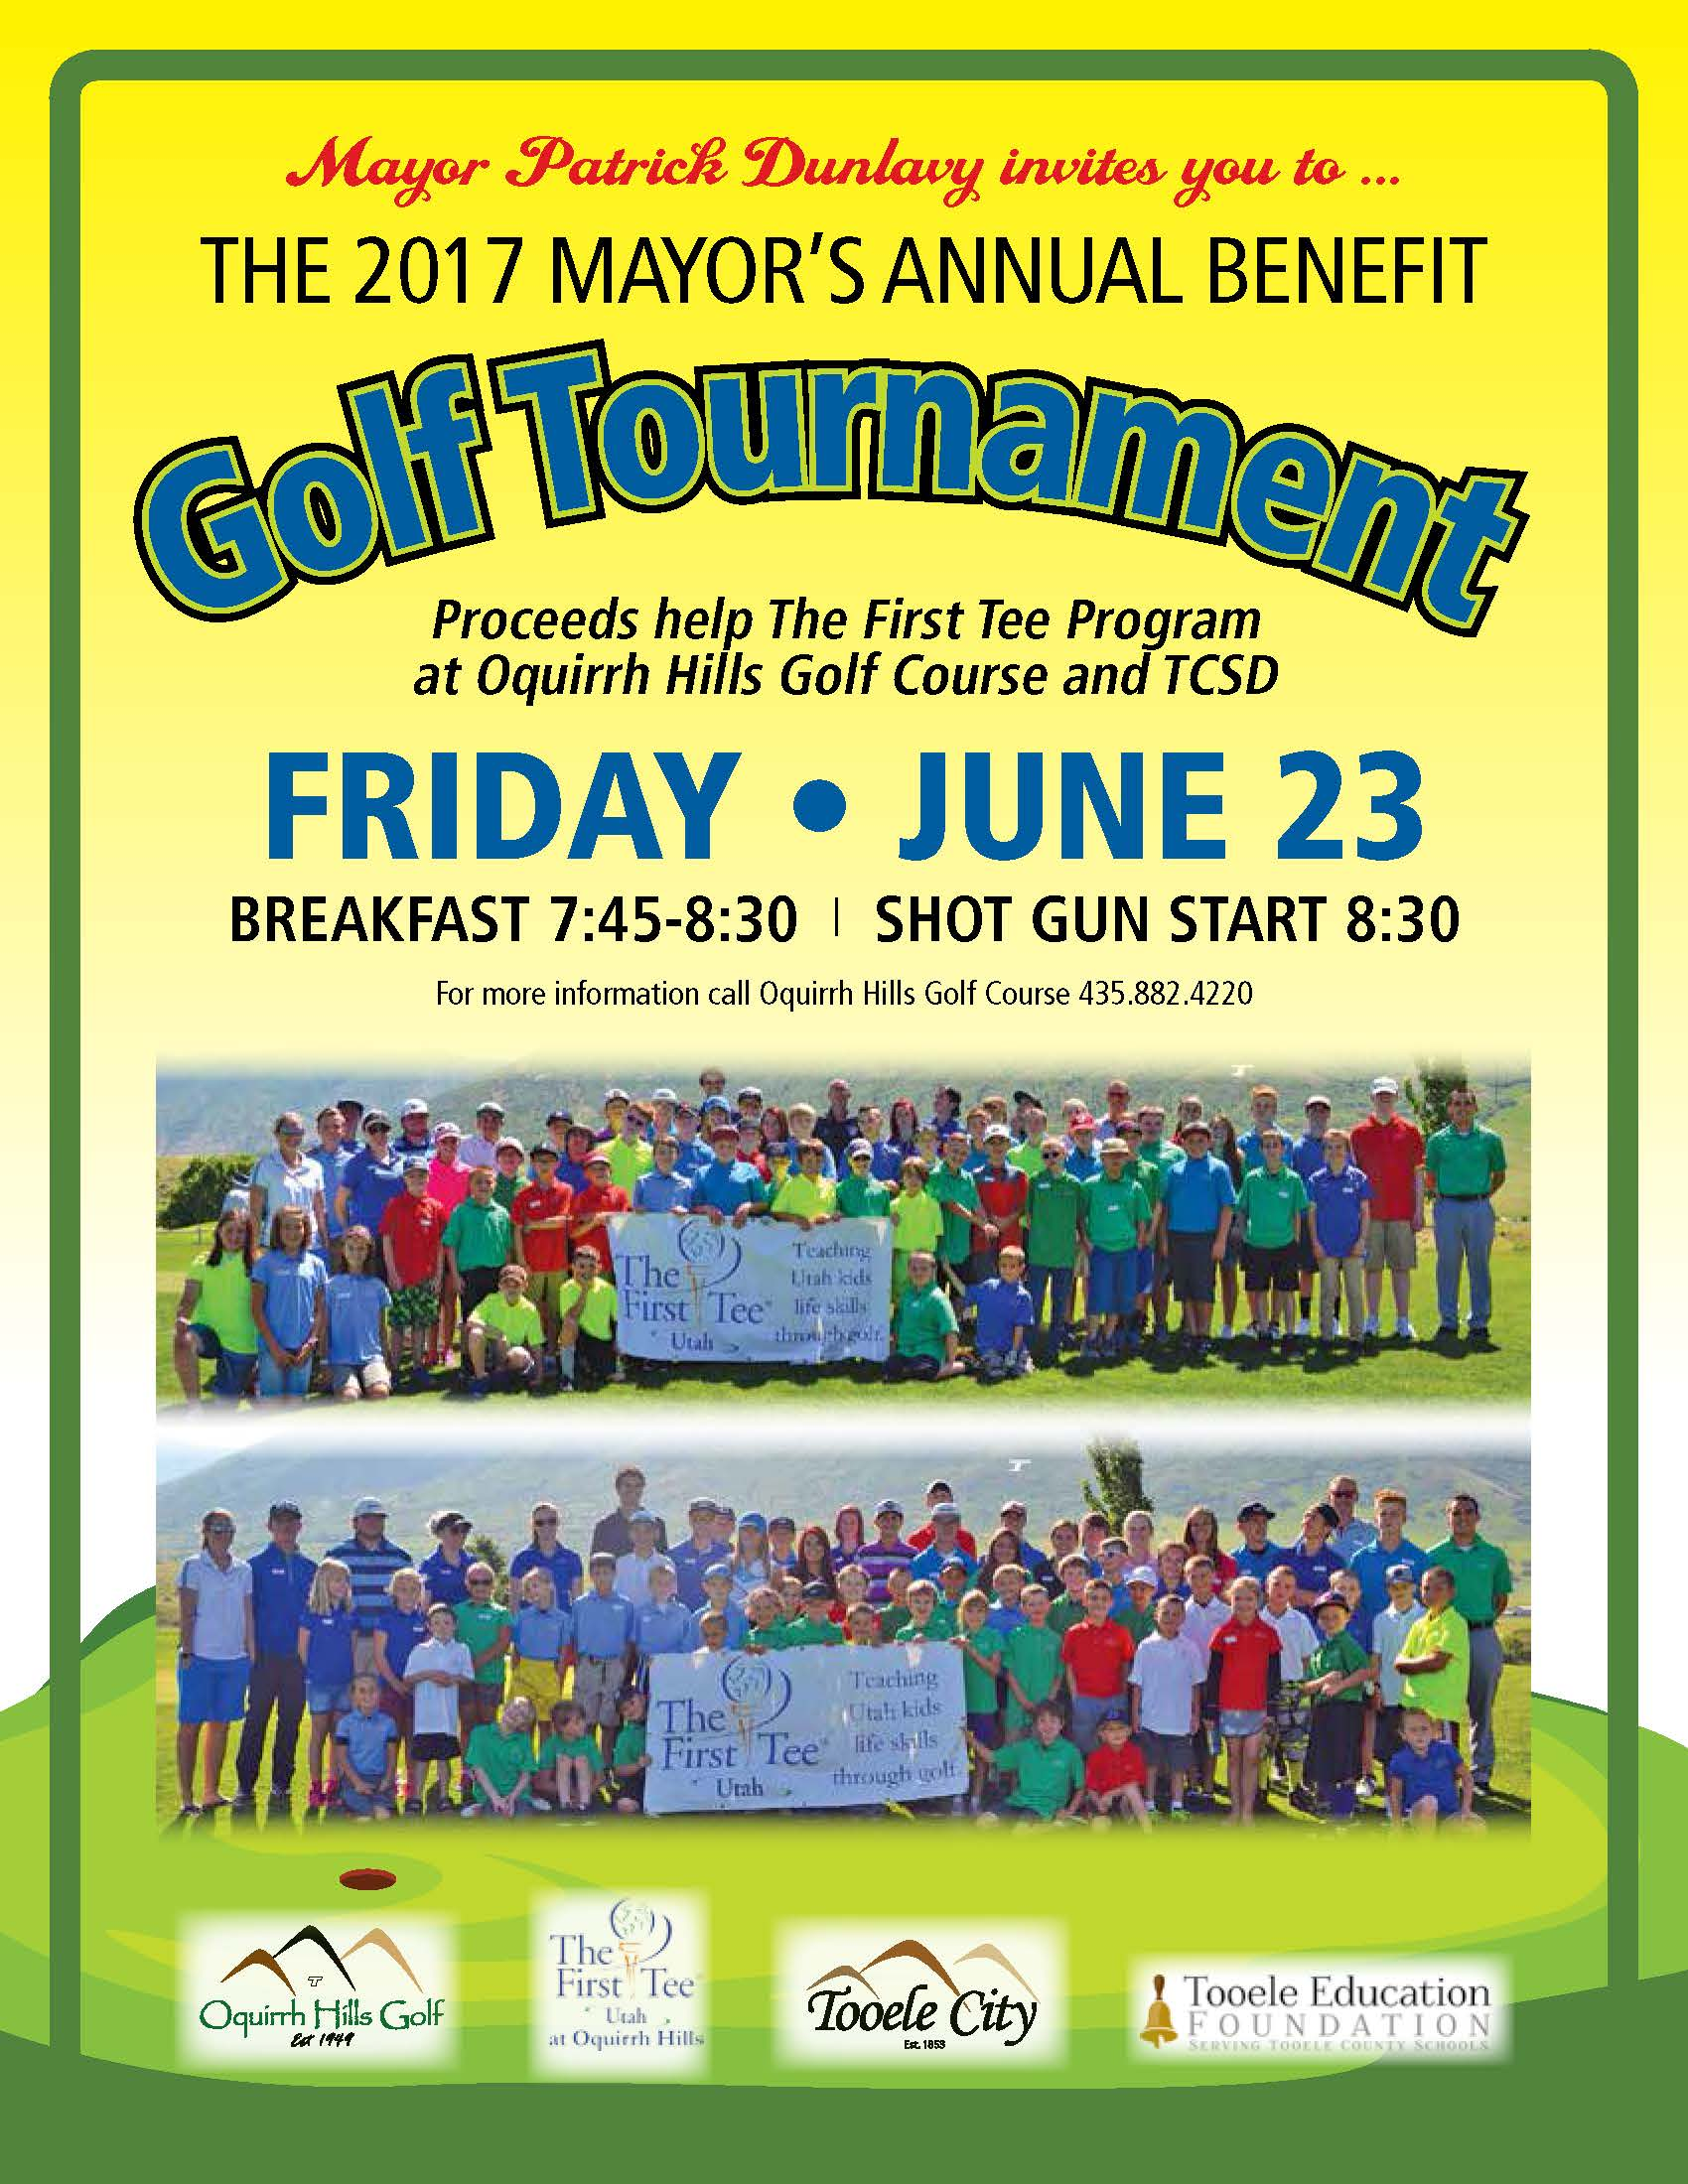 The Mayor's Annual Benefit Golf Tournament 2017 @ Oquirrh Hills Golf Course | Tooele | Utah | United States